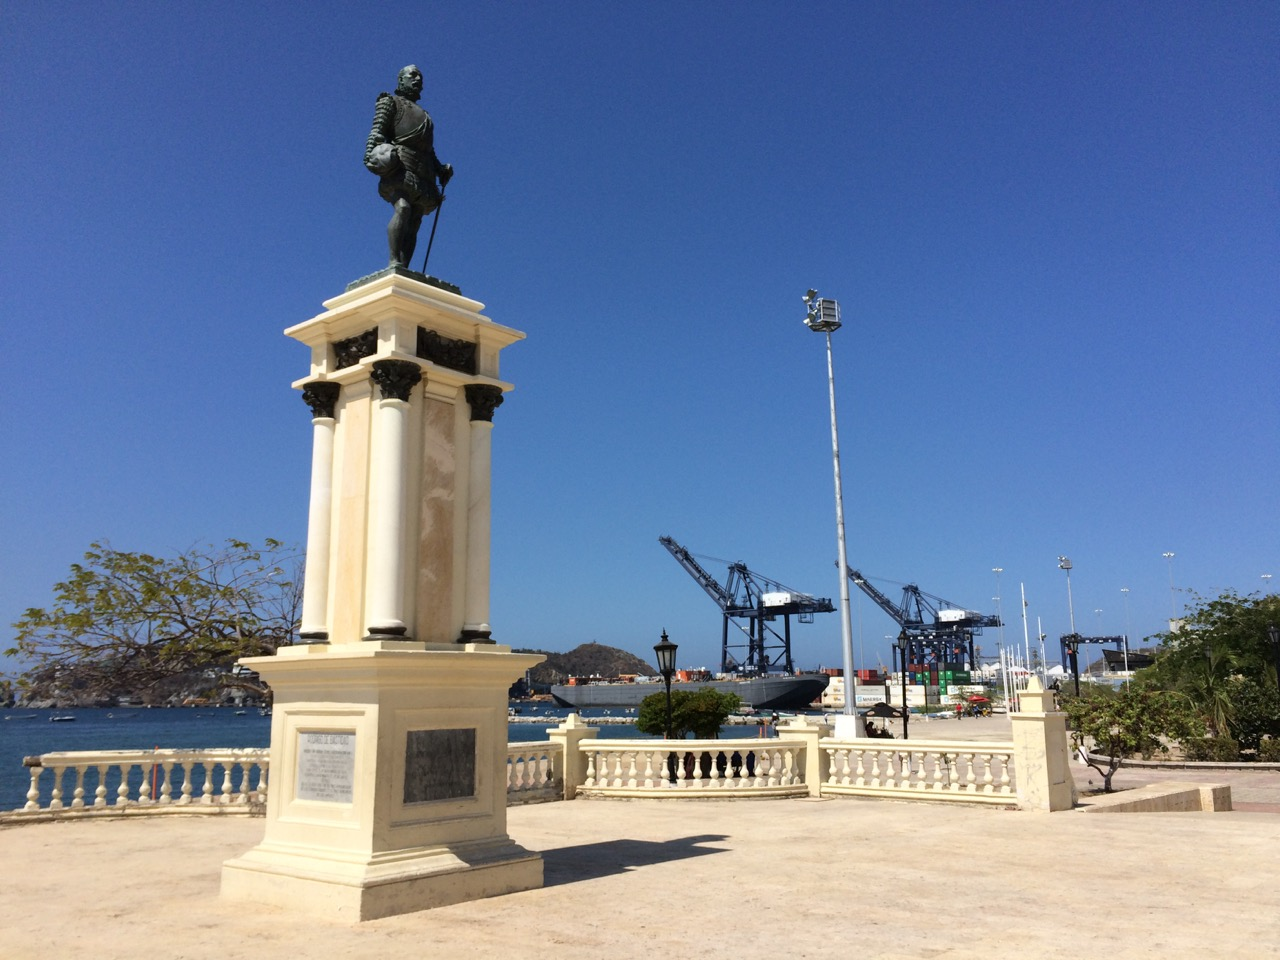 The statue of Rodrigo de Bastidas, the founder of Santa Marta